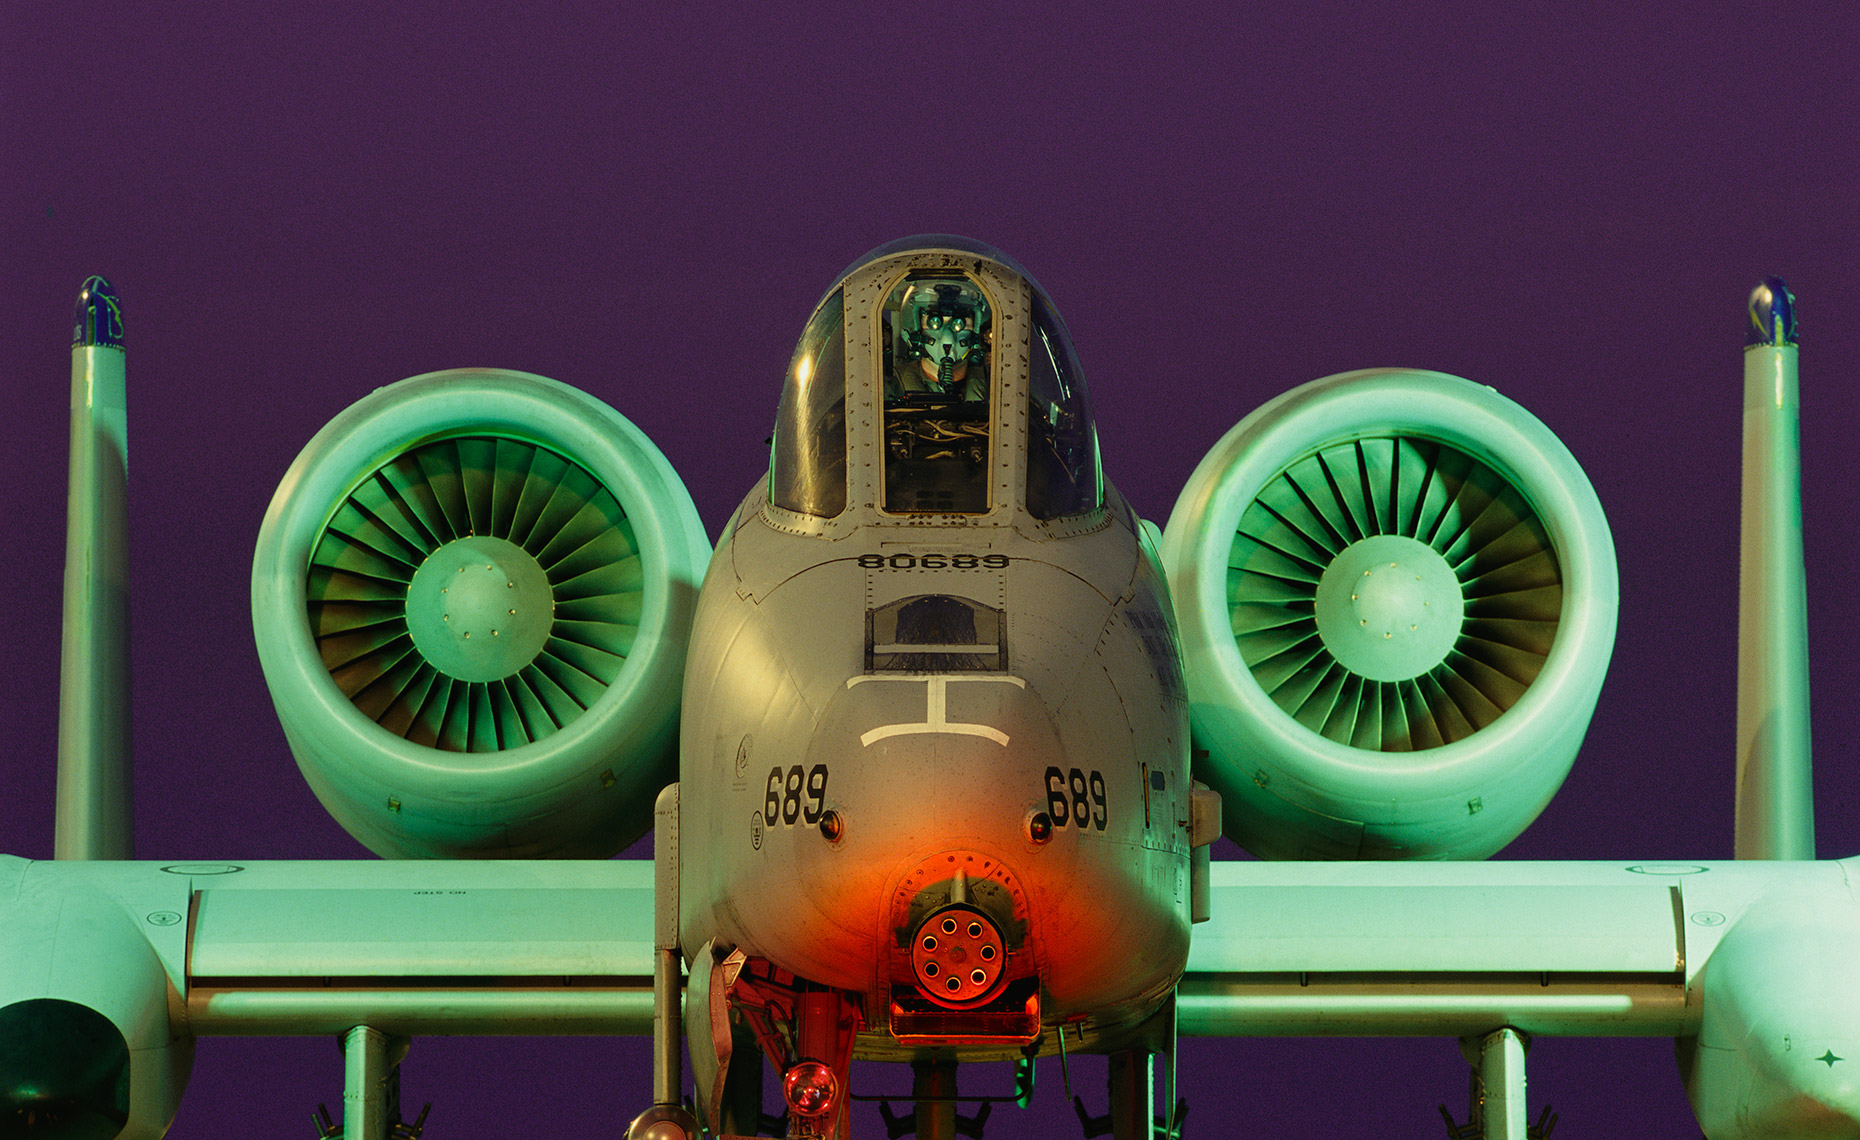 Fairchild Republic A-10 Thunderbolt II Warthog